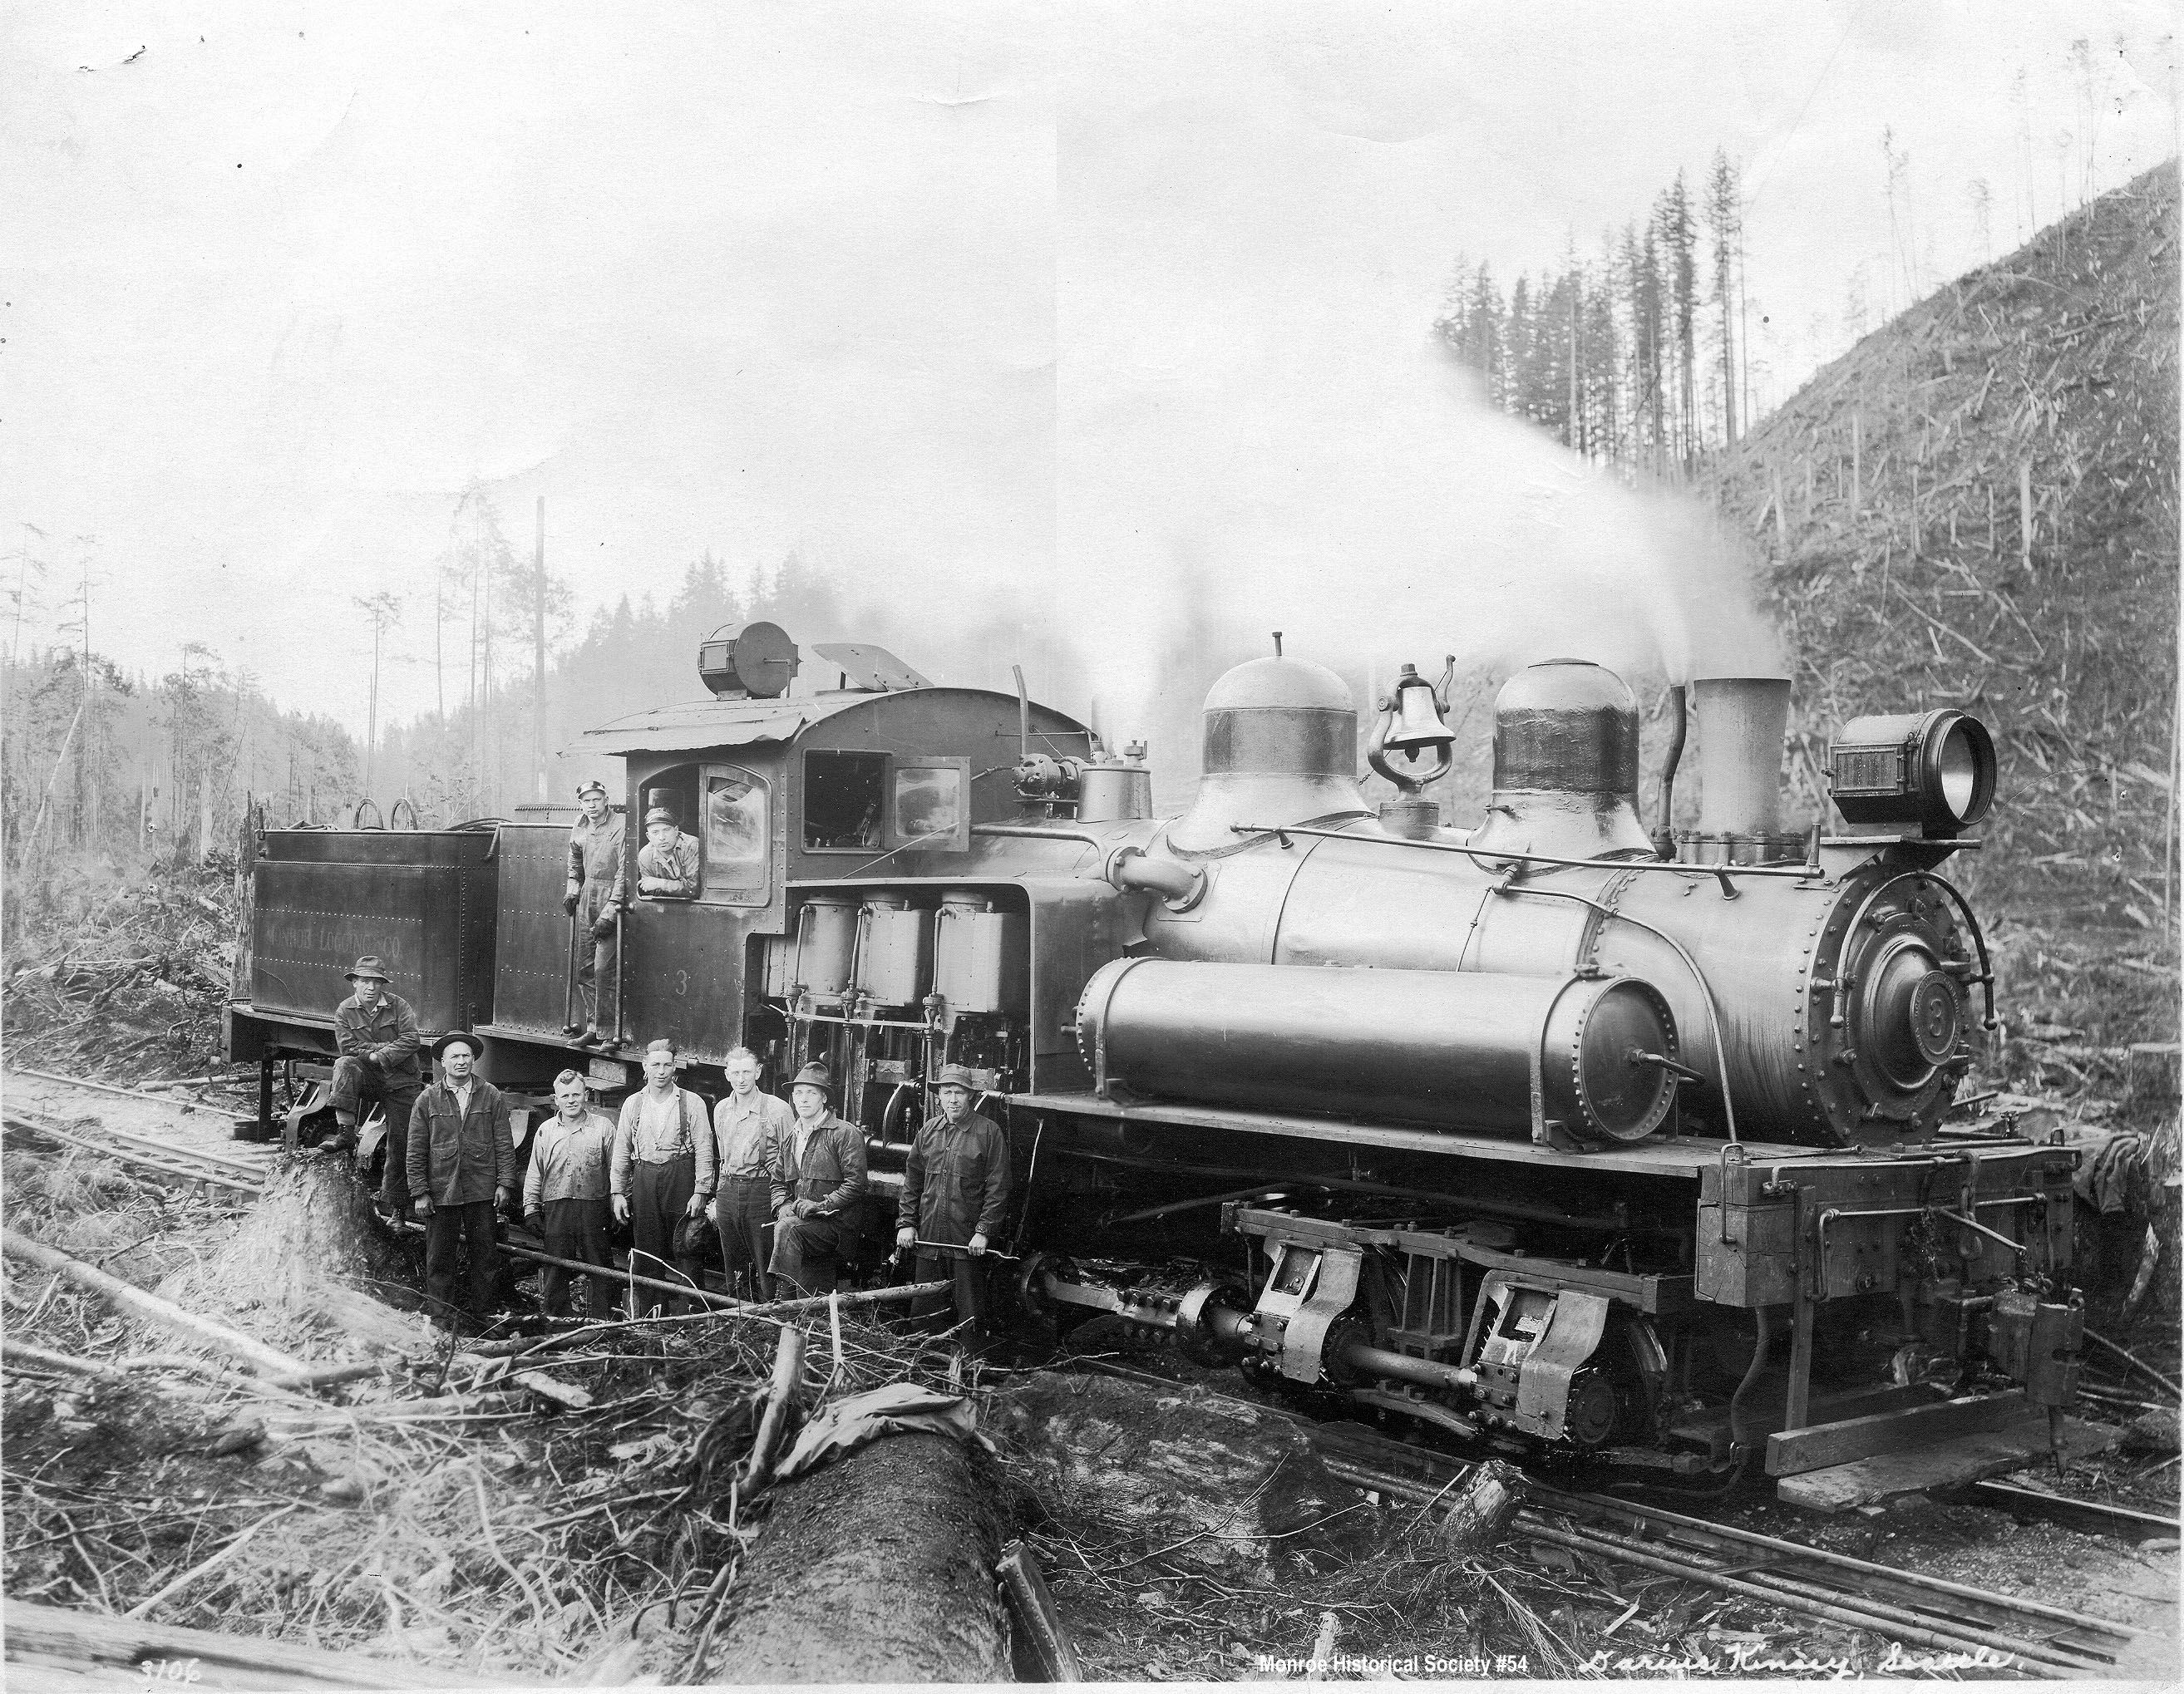 0054 – Shay locomotive with Ed Johnson in the cab, Monroe Logging Company c1924